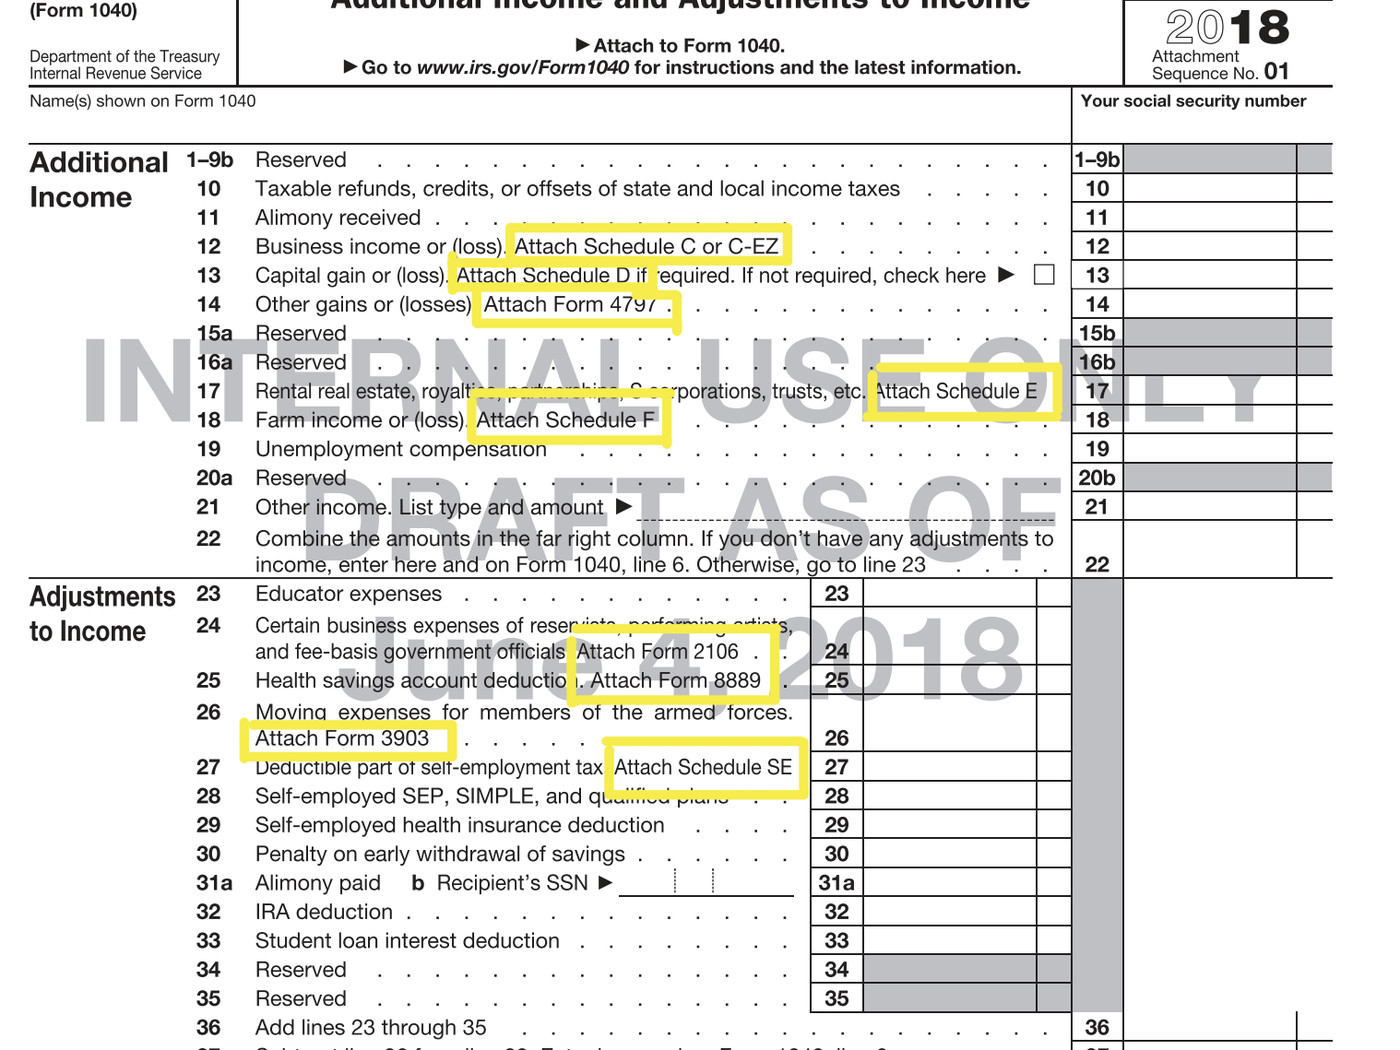 The GOP tax postcard requires 6 extra forms - Vox